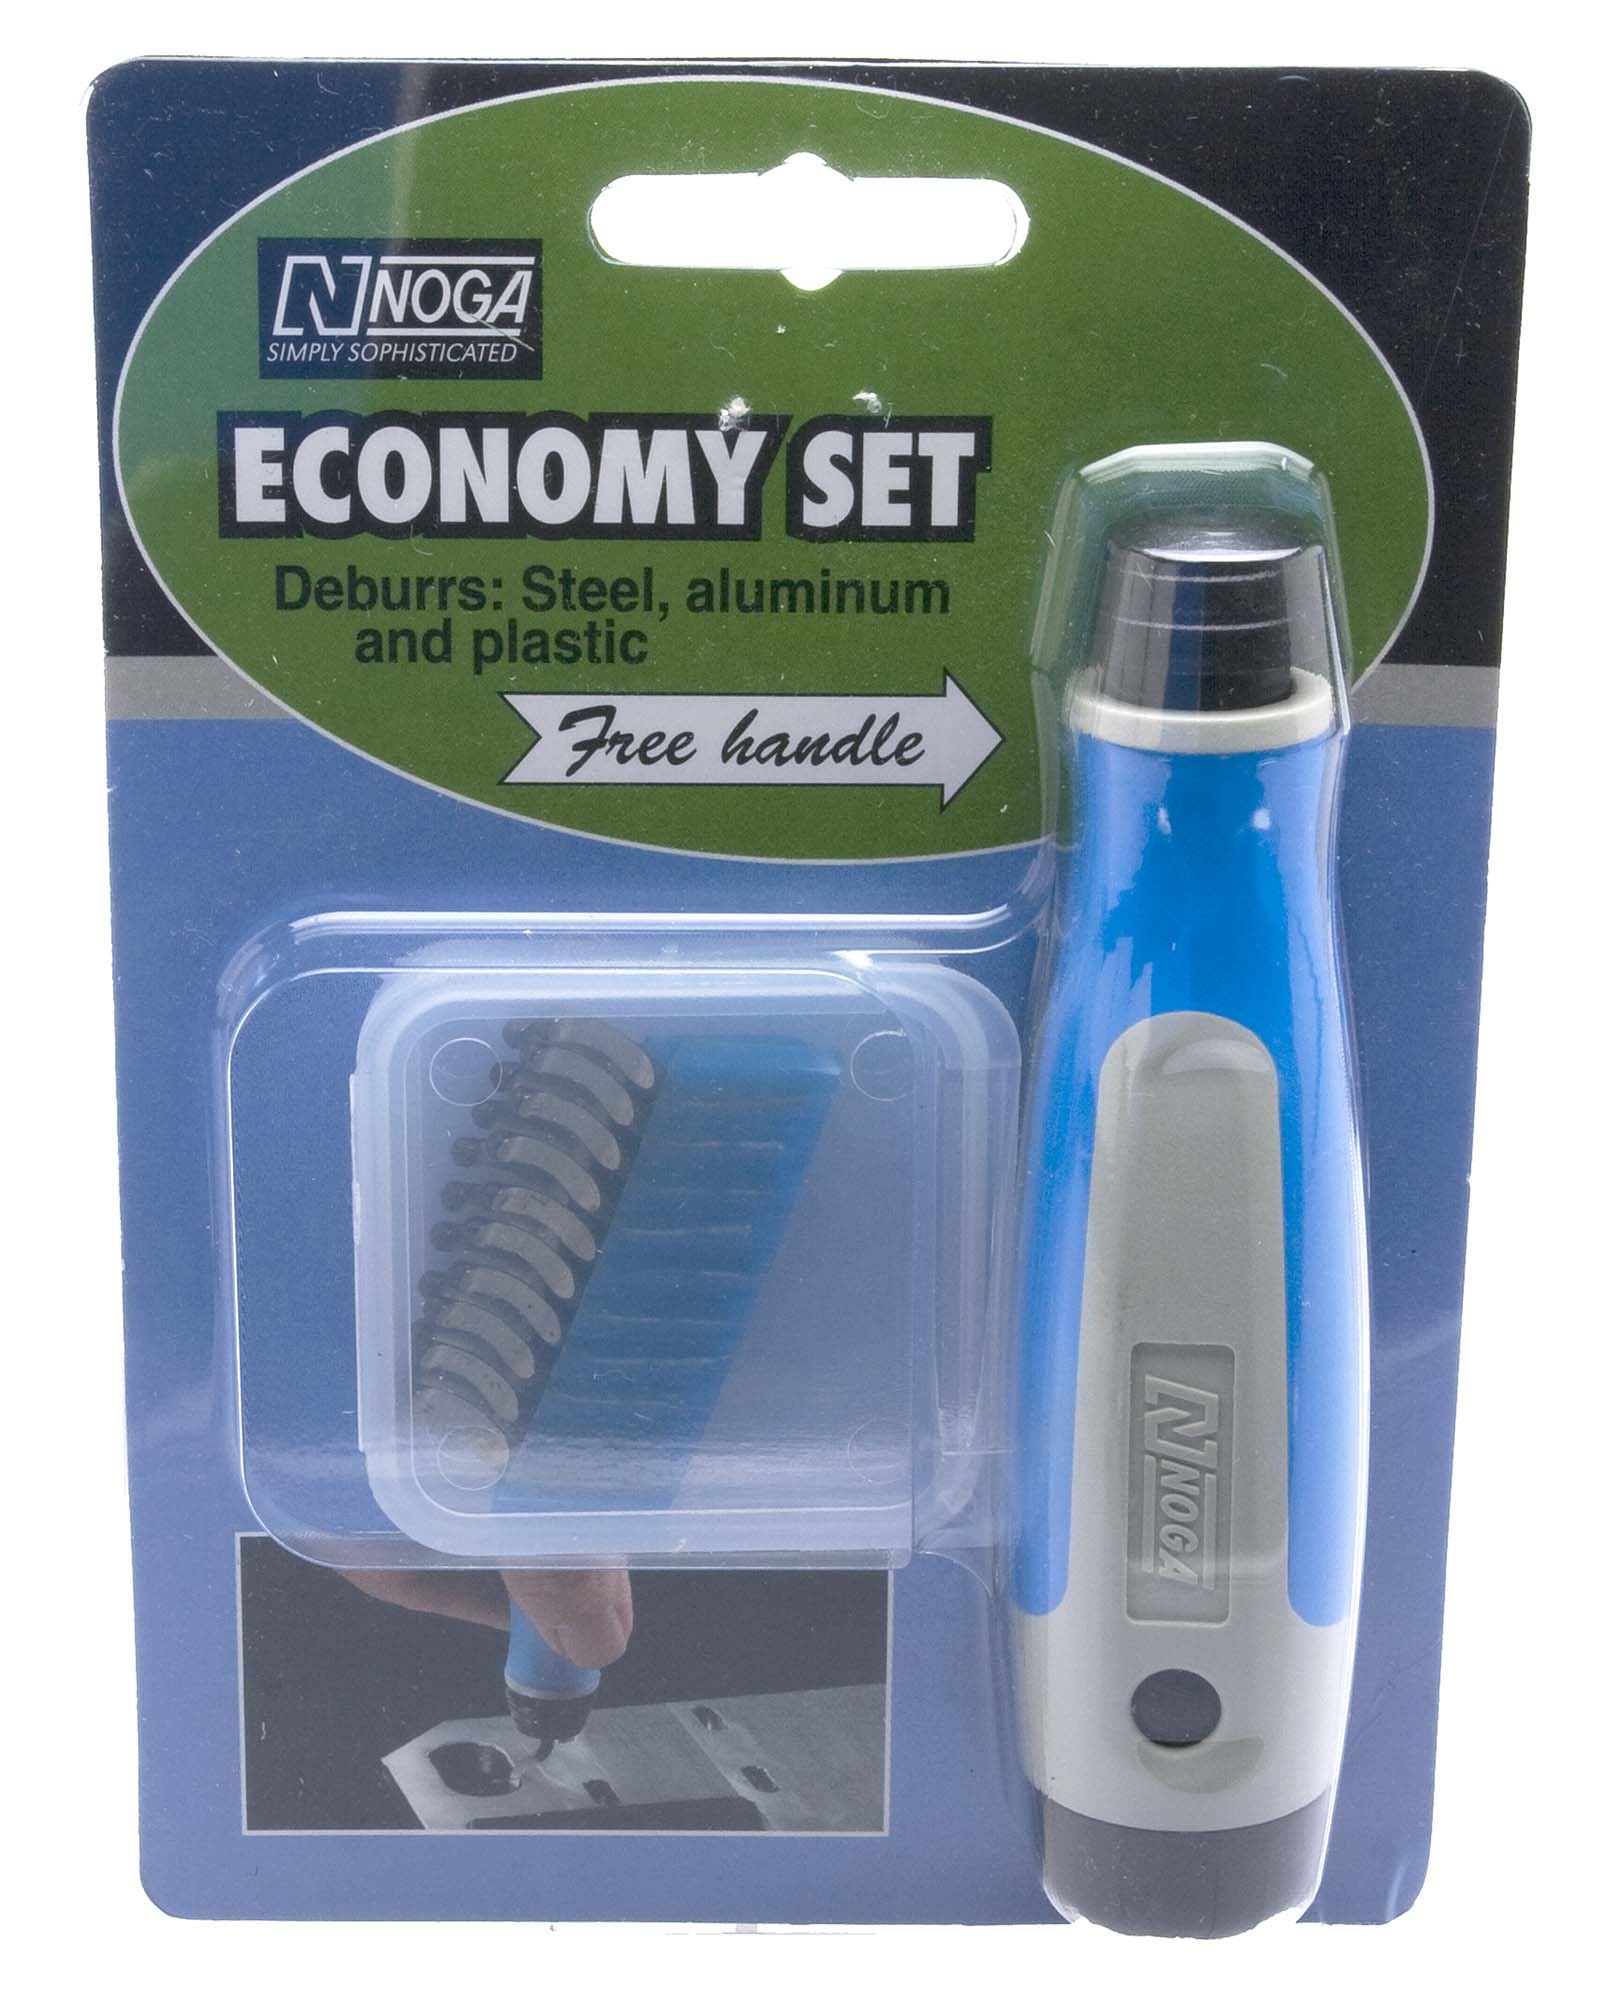 Noga NG8050 Light Duty Deburr Tool, with 20 blades